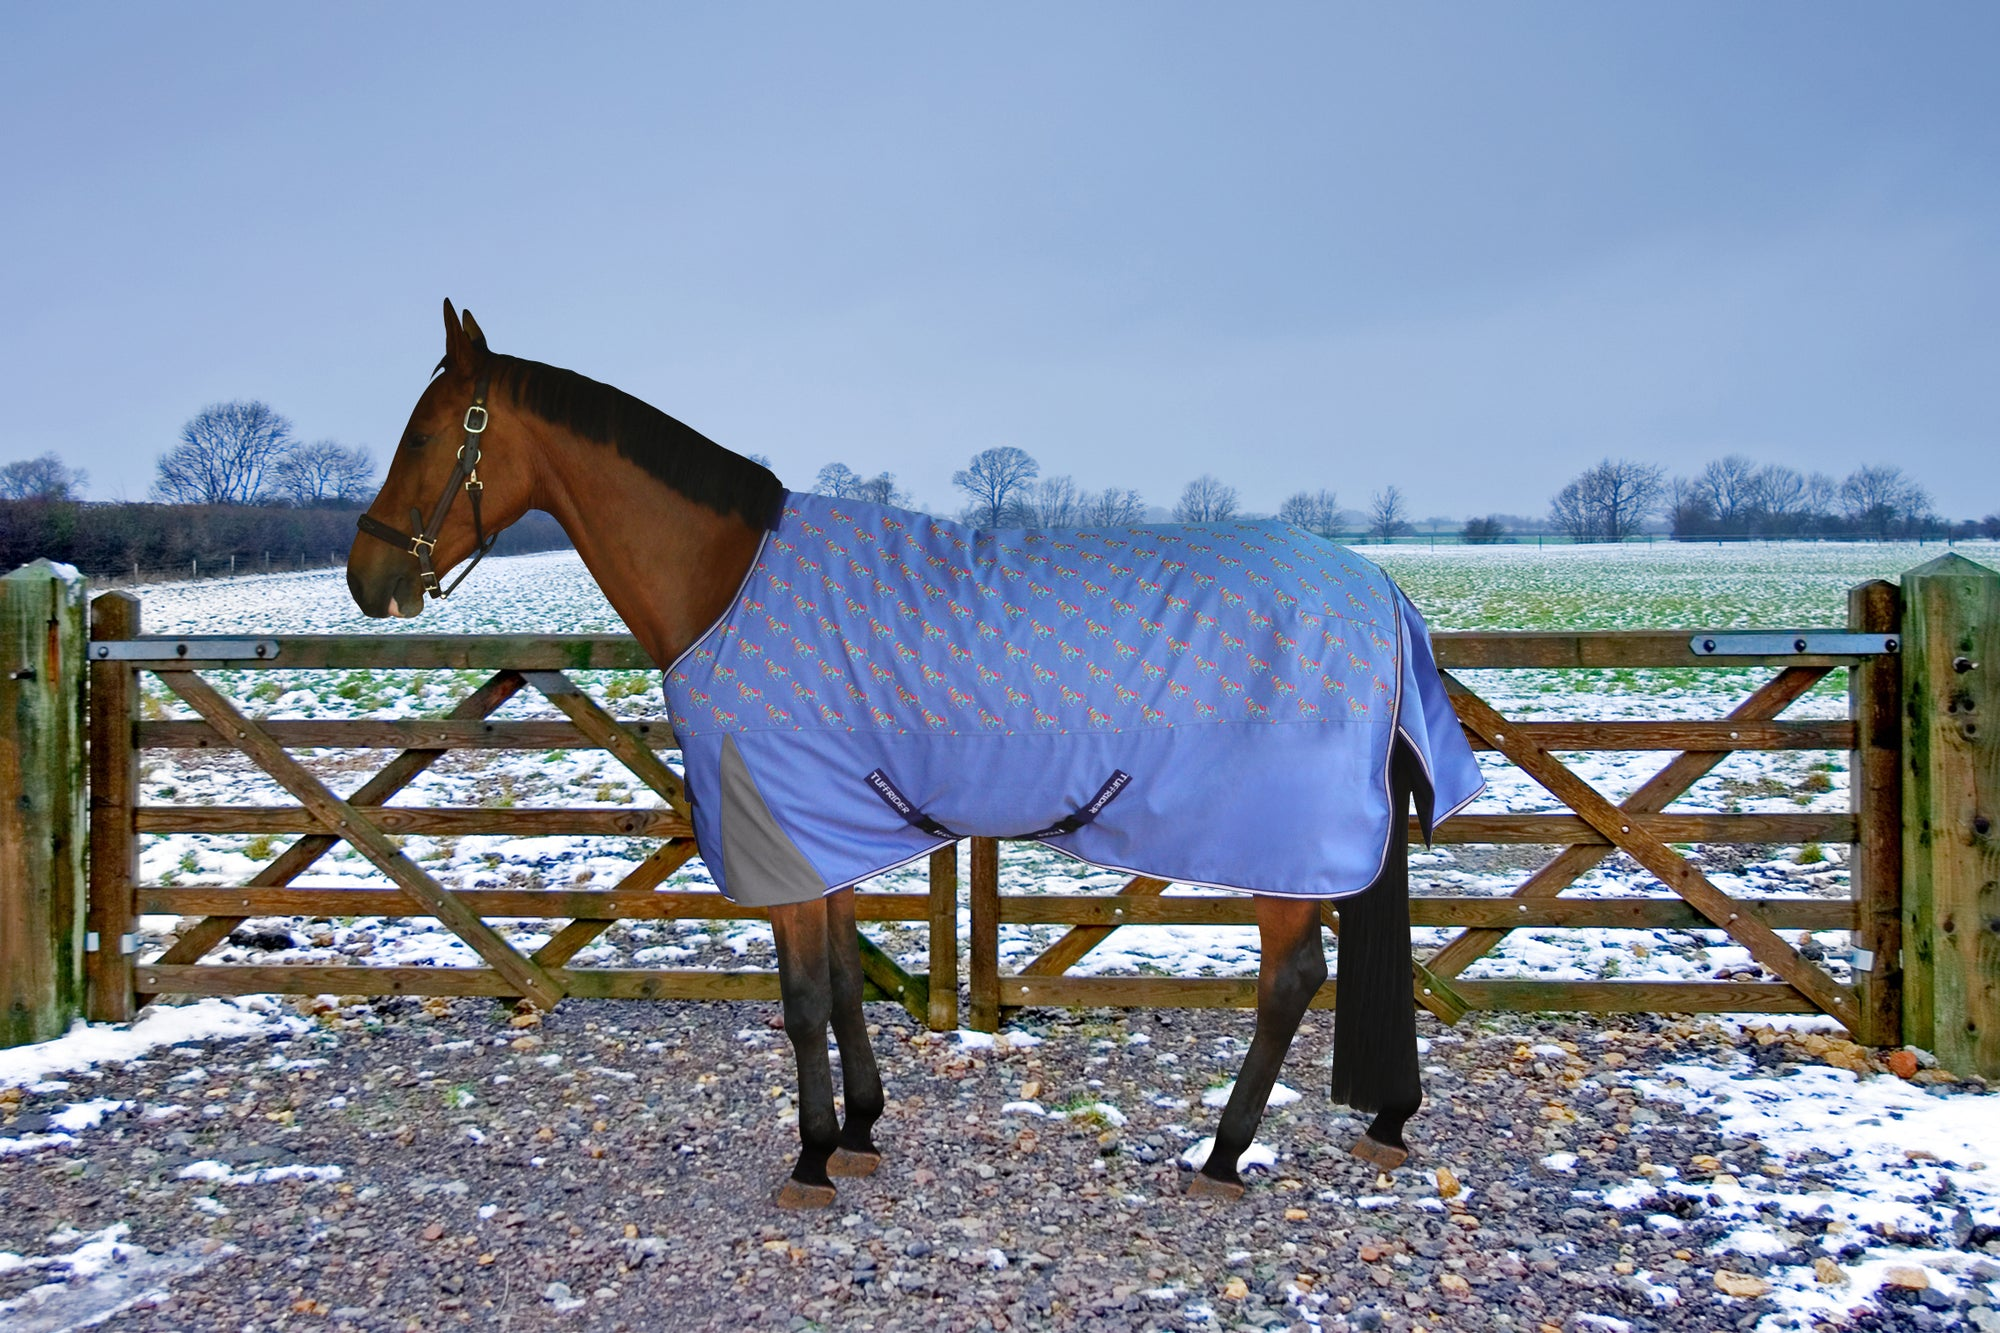 TuffRider 1200D Ripstop Turnout Blanket with 220gms Medium Weight - Adorable Horse Print_1